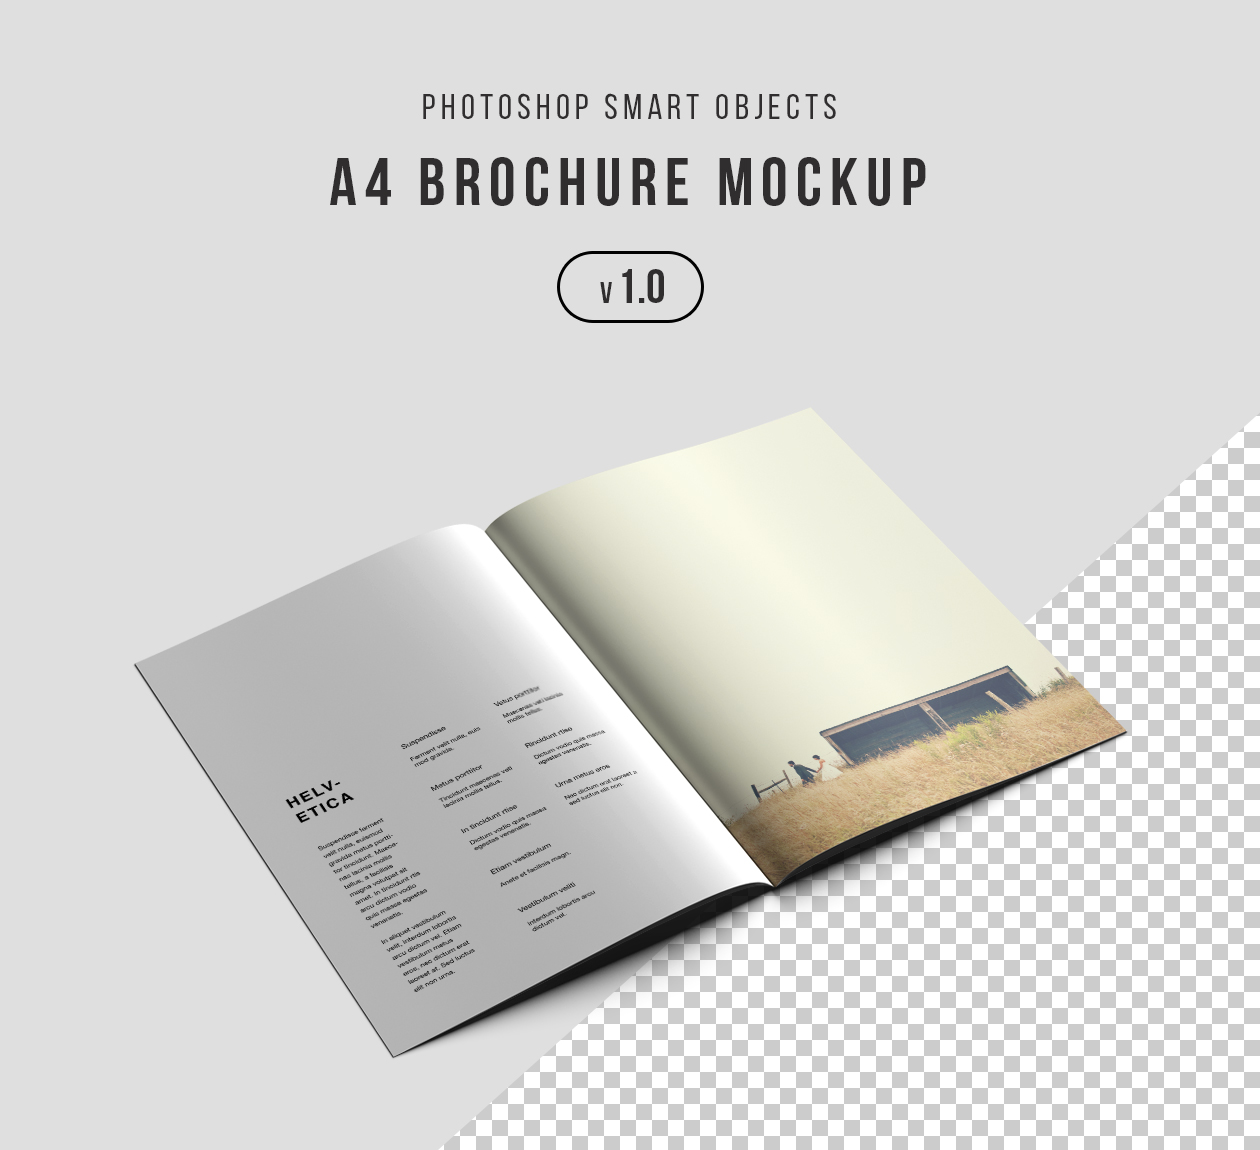 Photoshop a4 brochure mockup psd for A4 brochure template psd free download